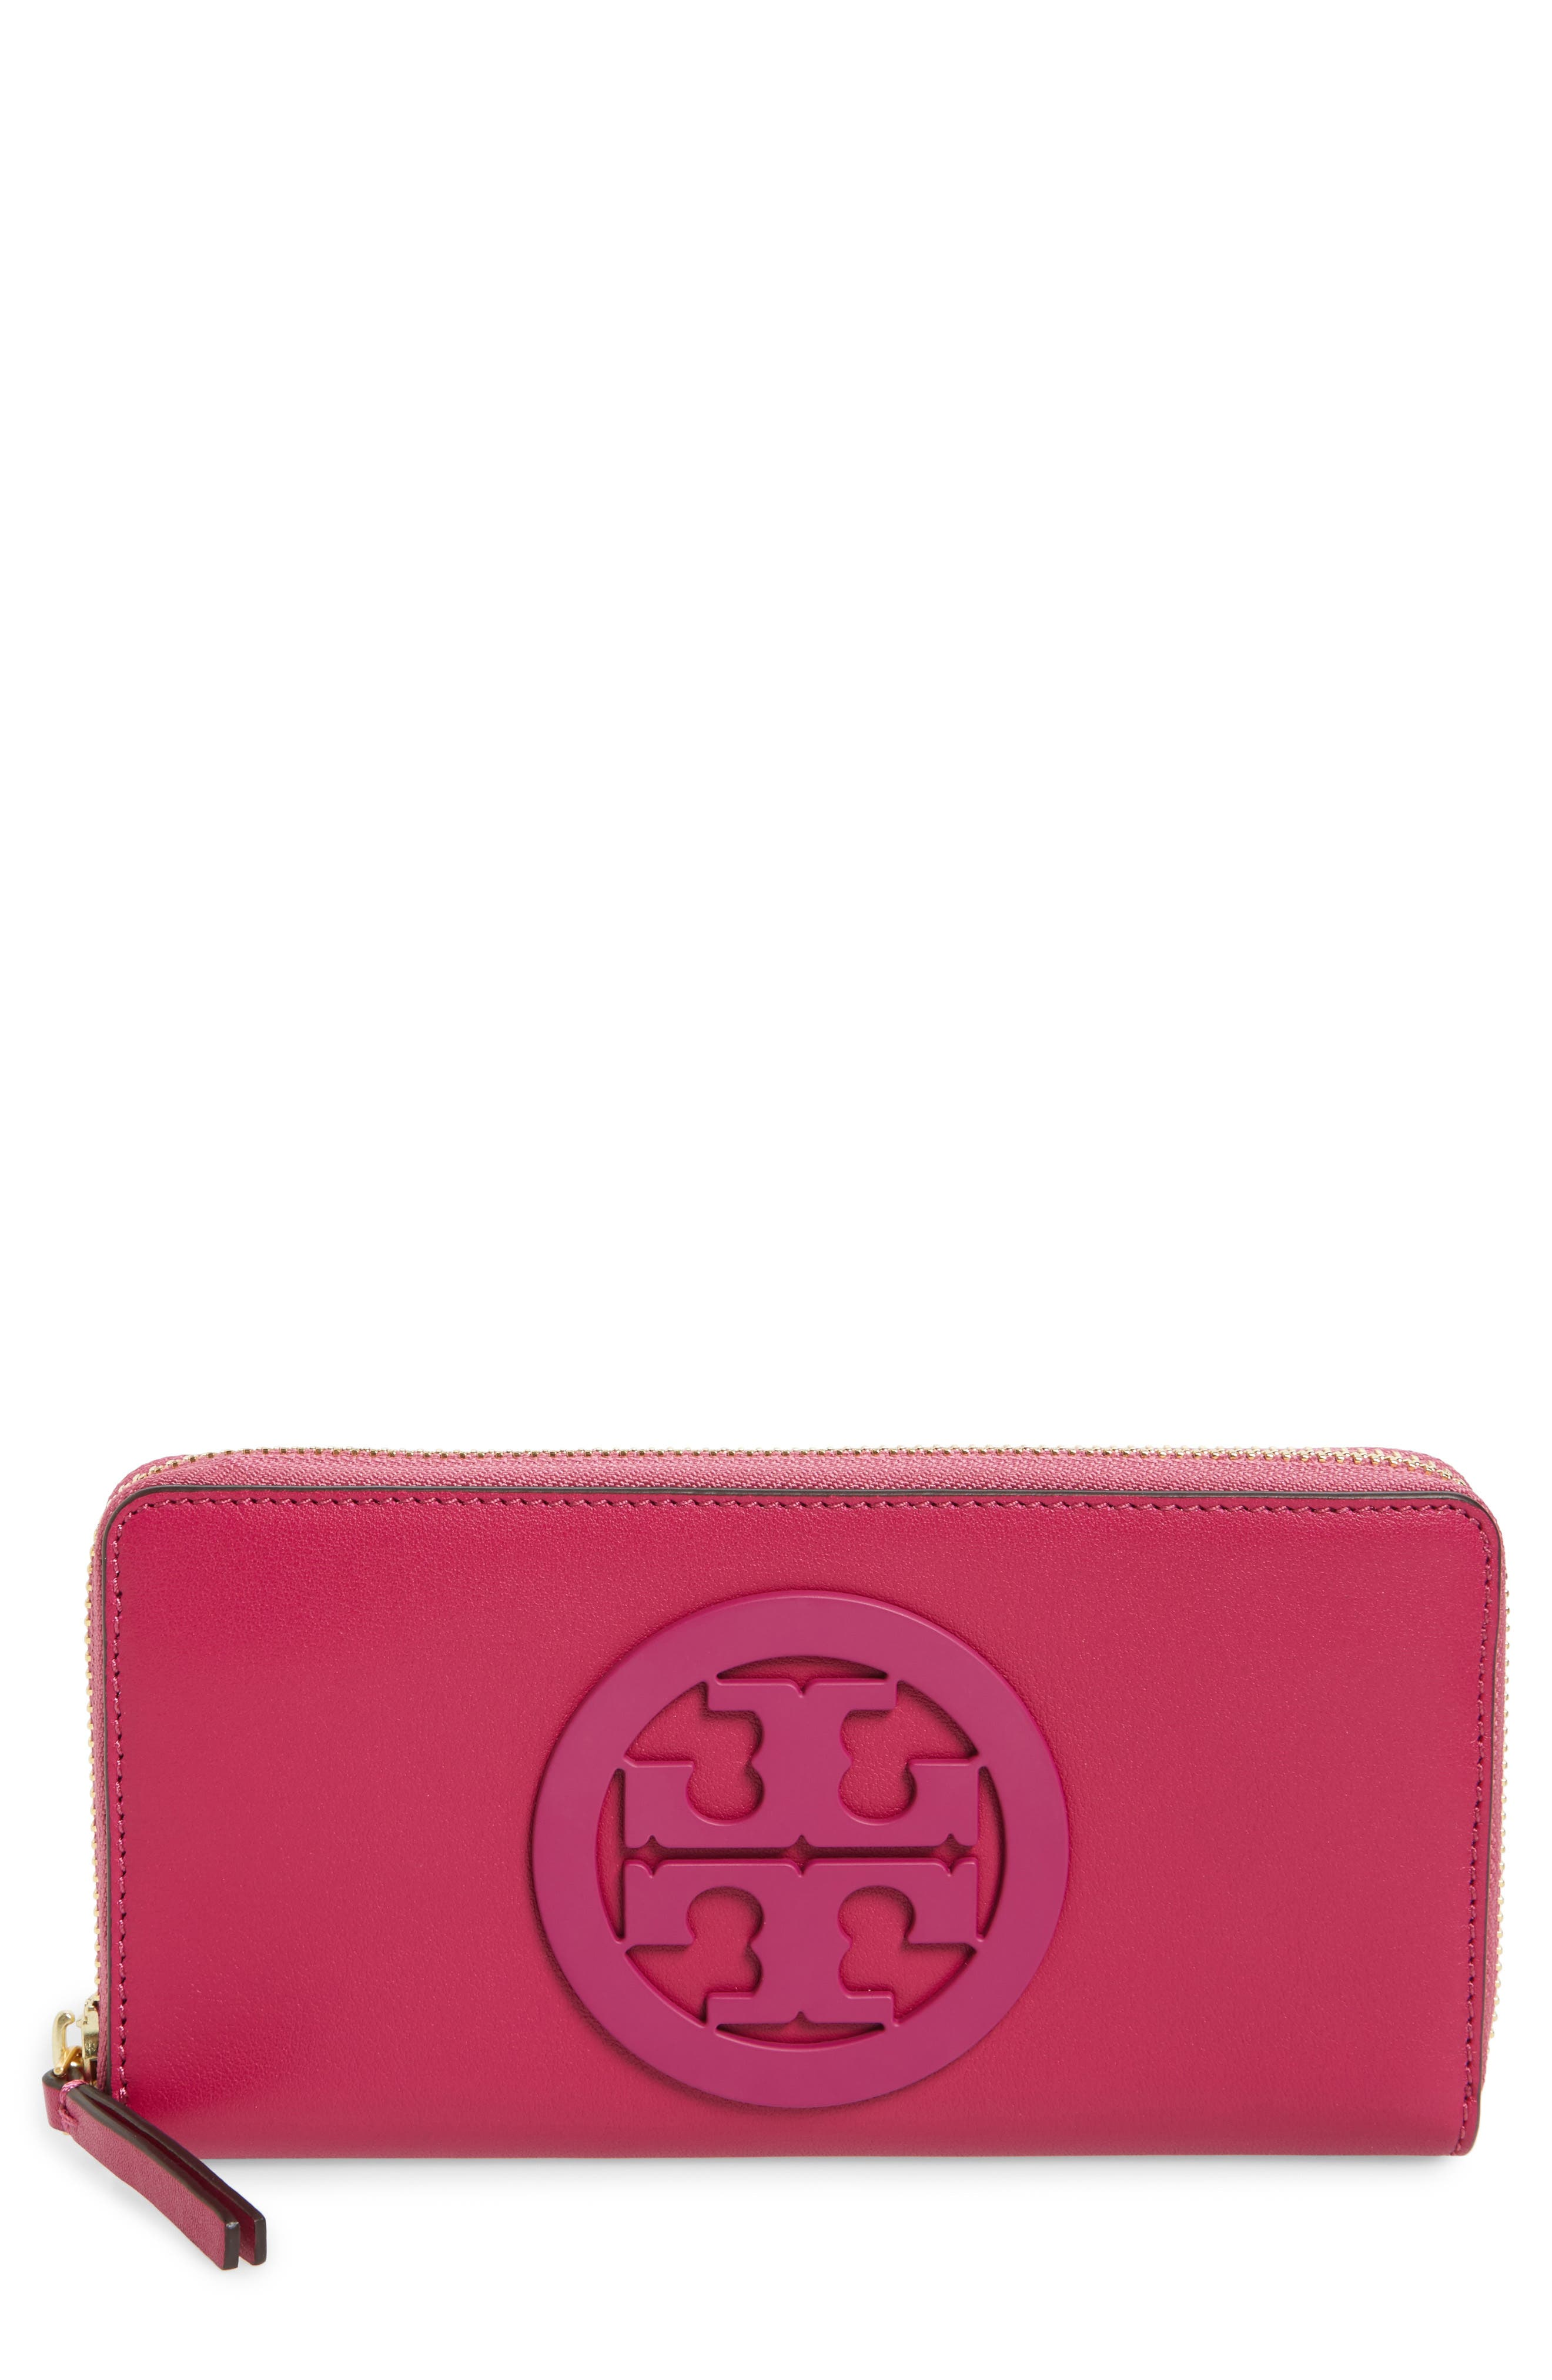 Charlie Leather Continental Wallet,                             Main thumbnail 1, color,                             Party Fuchsia